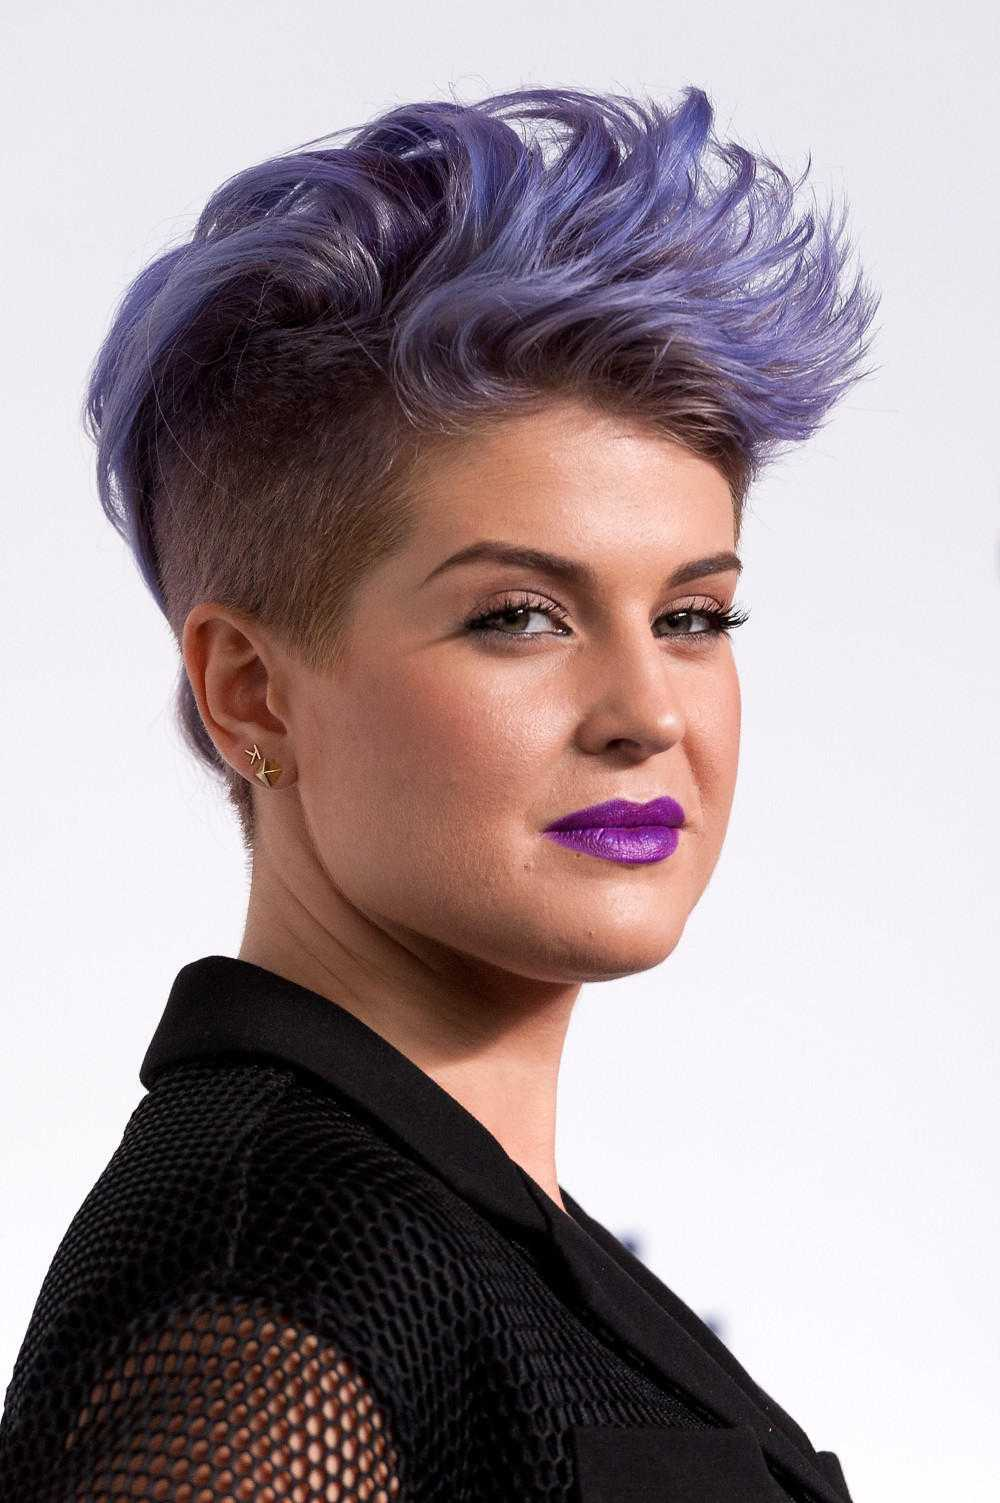 Kelly Osbourne Parents